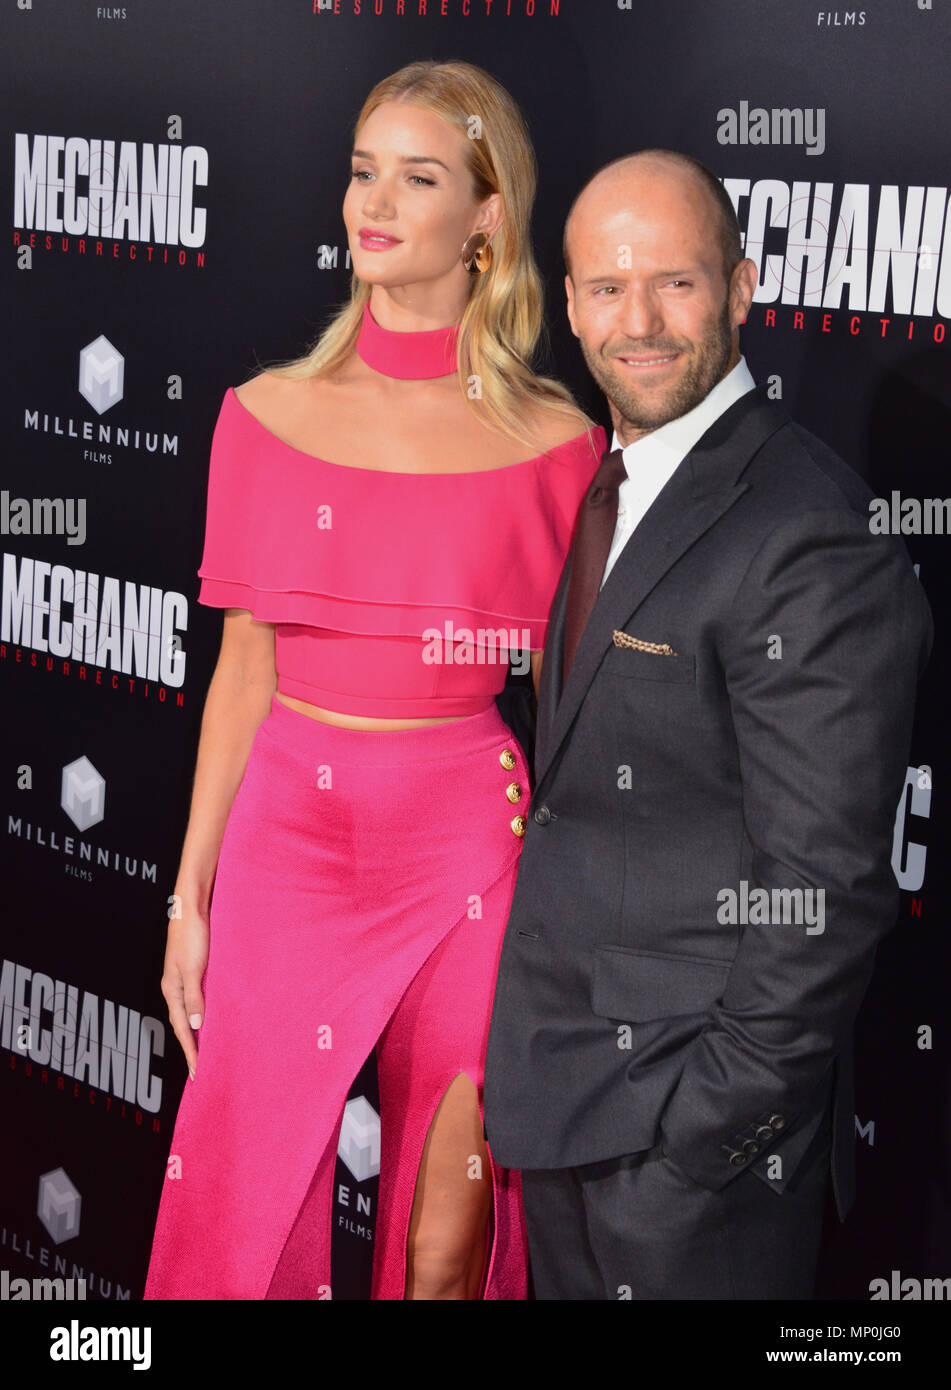 Rosie Huntington Whitley High Resolution Stock Photography And Images Alamy